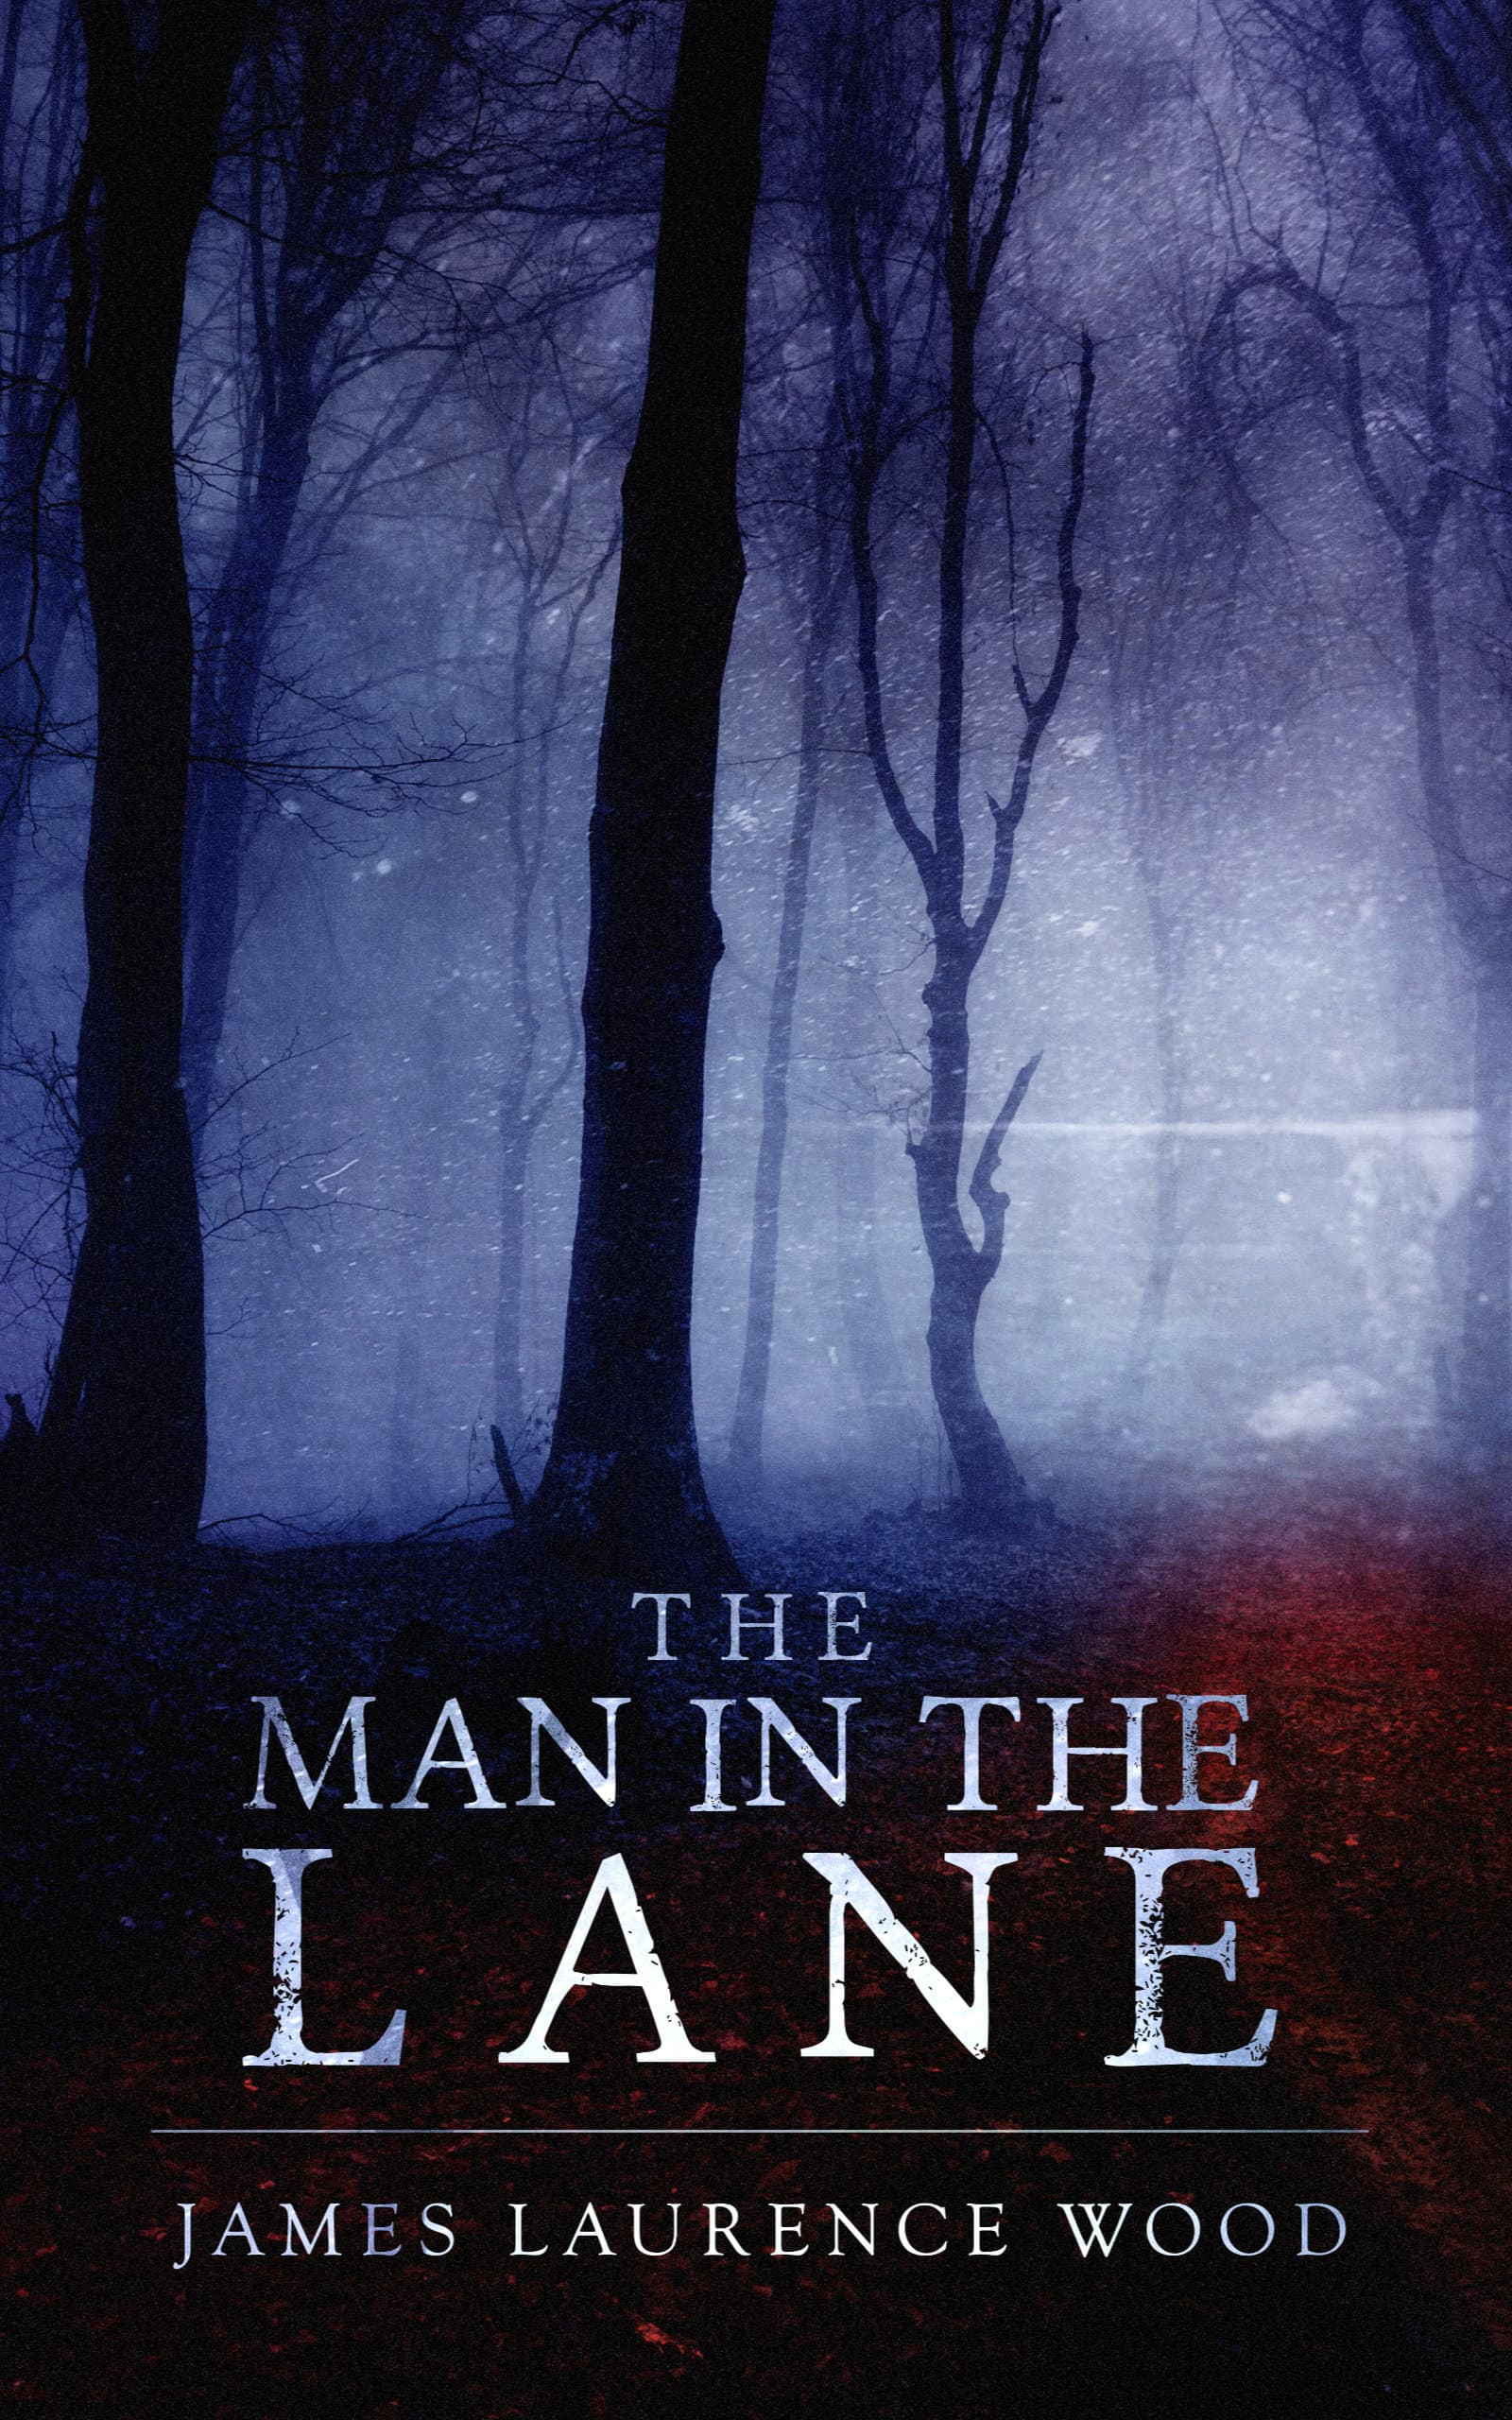 The Man in the Lane